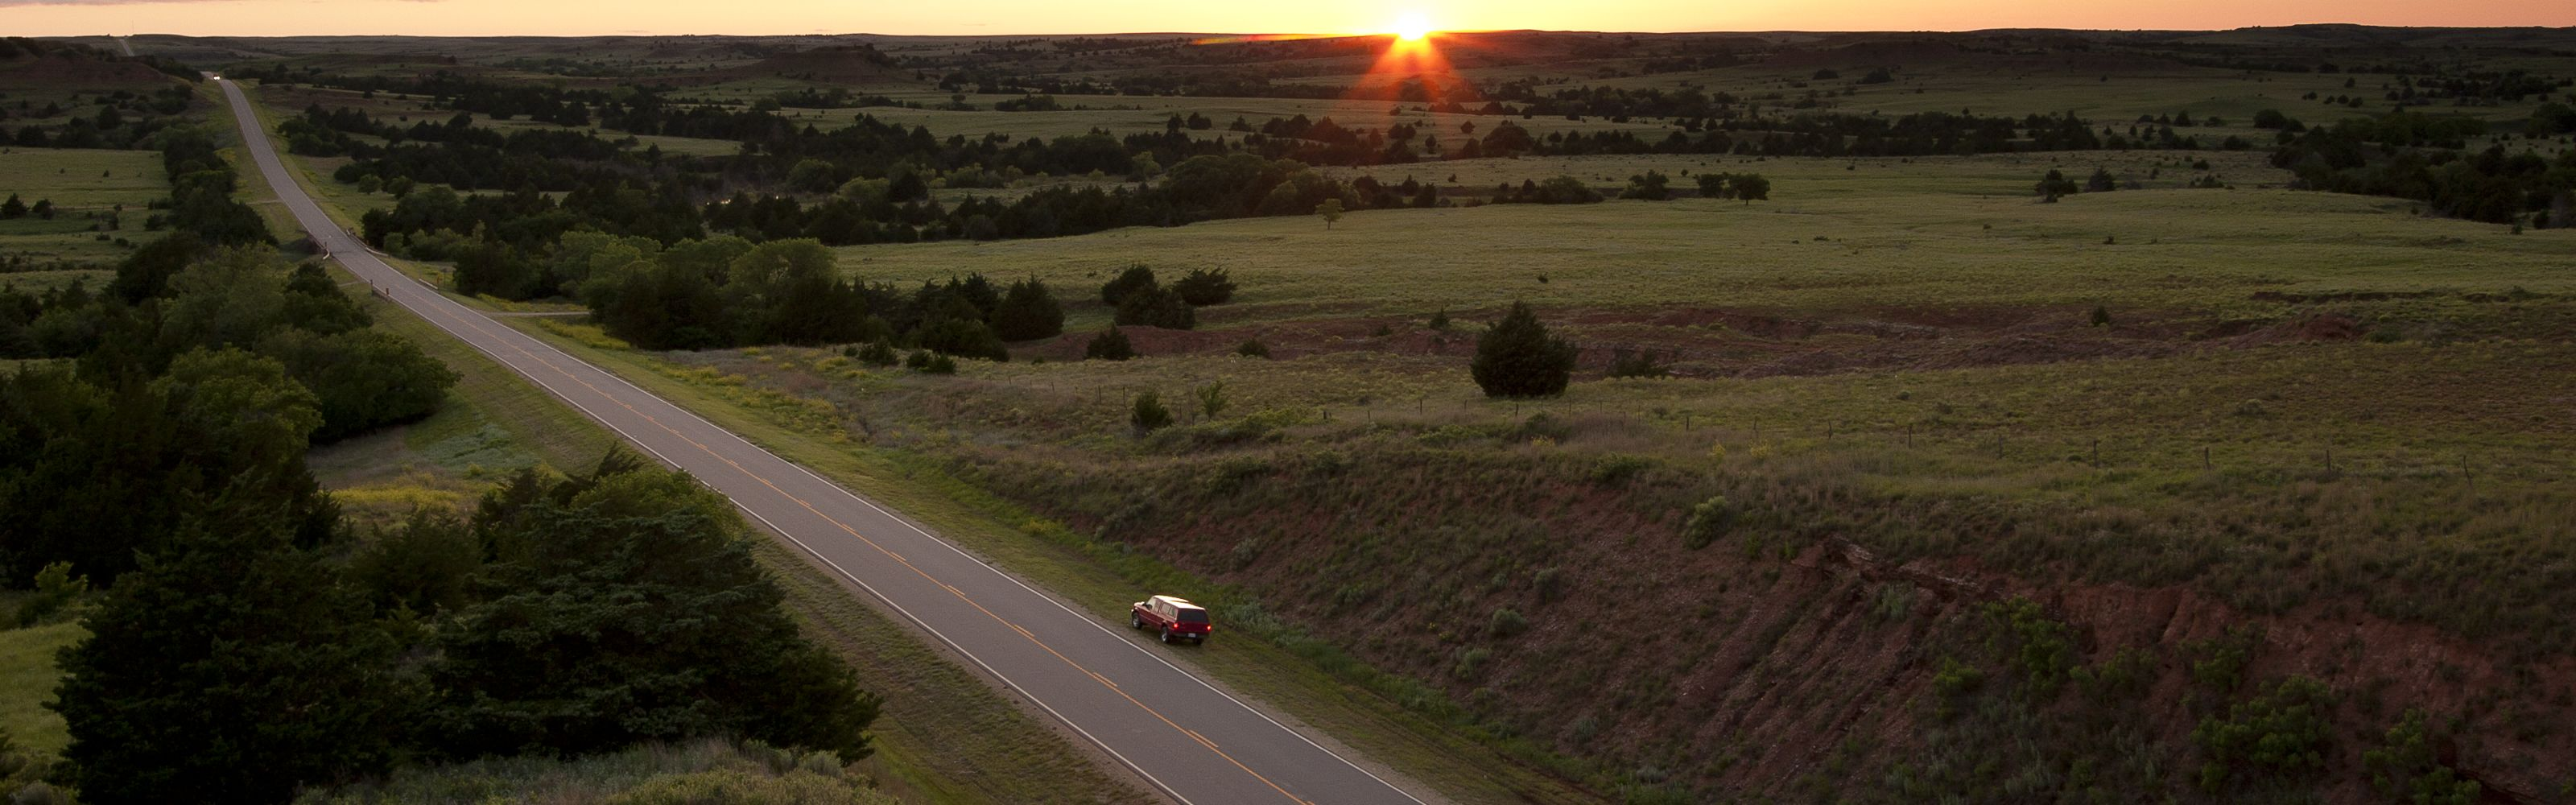 Explore the beauty of the Red Hills by taking a trip on the Gyp Hills Scenic Byway.